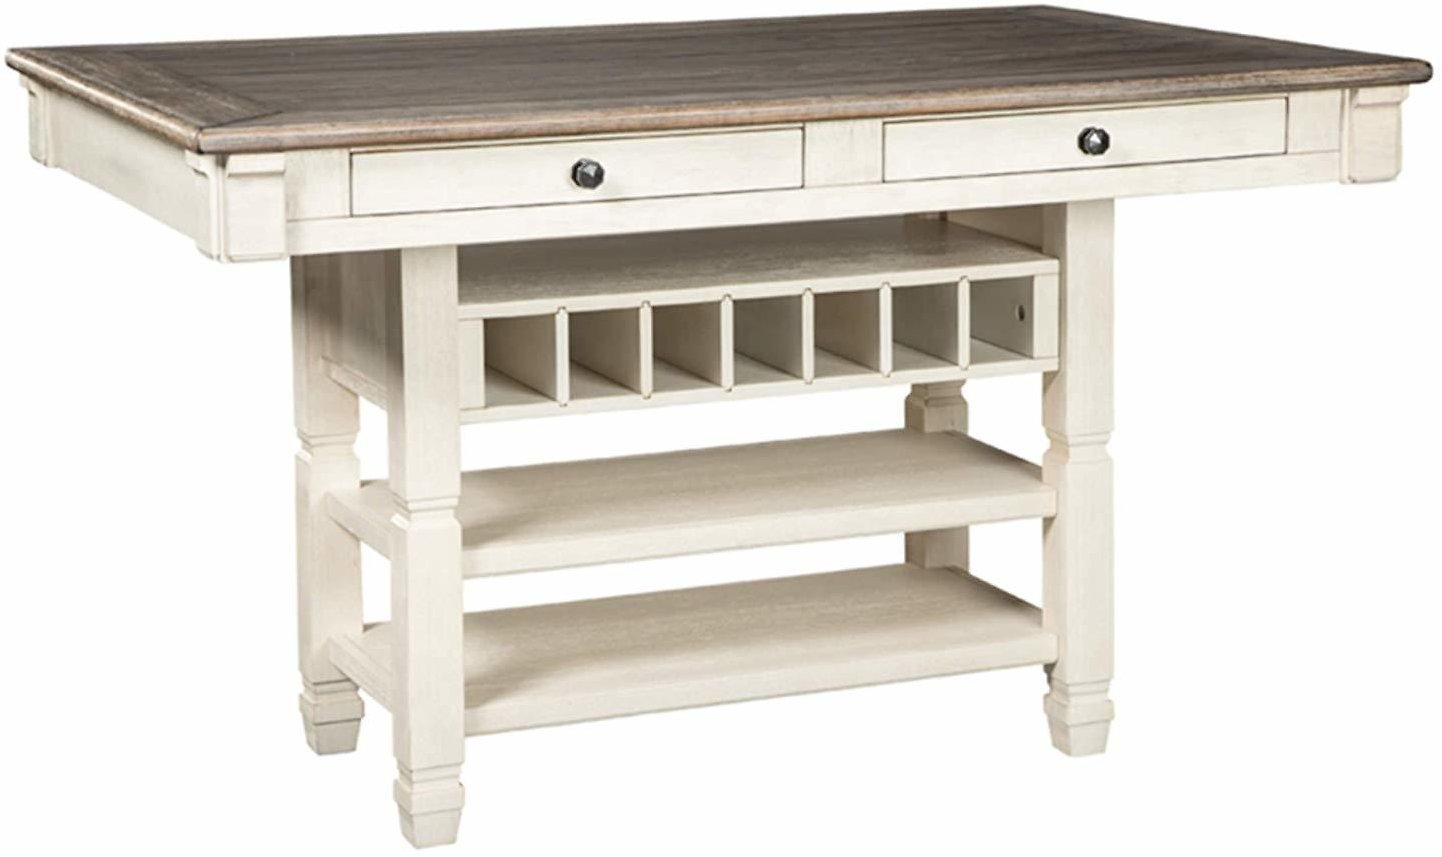 Ashley Furniture Signature Design Bolanburg Counter Height Dining Room Table, Antique White